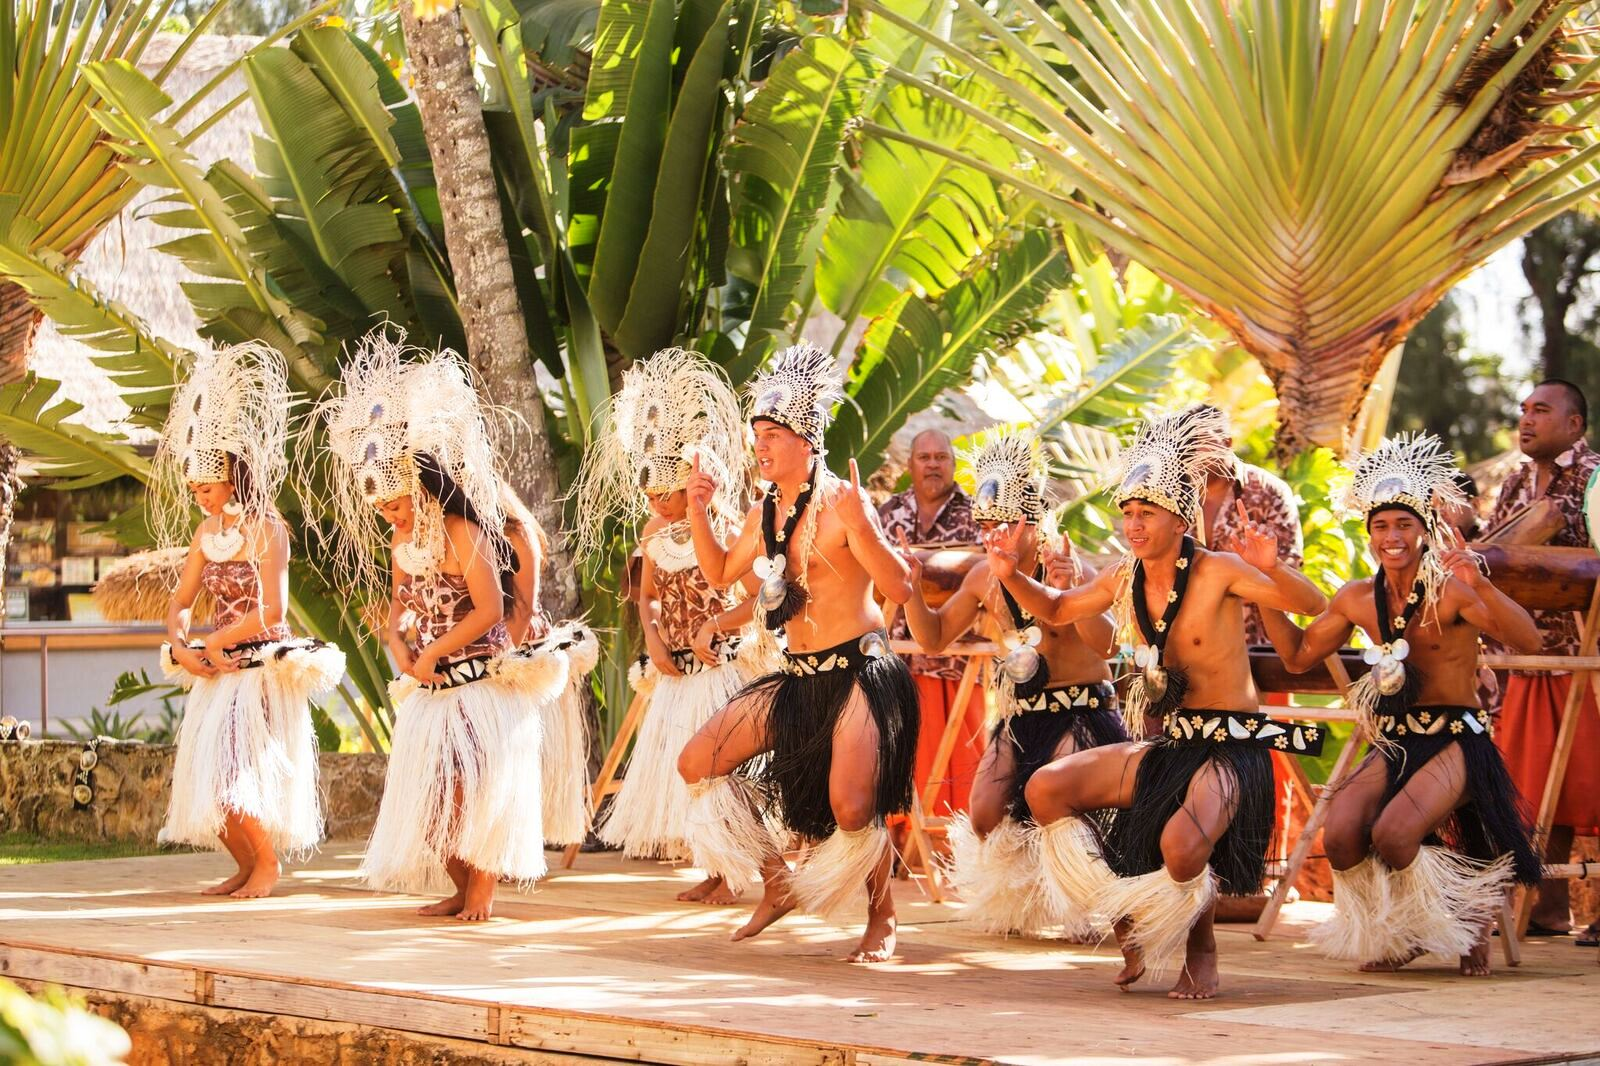 Picture of the male dancers performing at the Polynesian Cultural Center in 2017